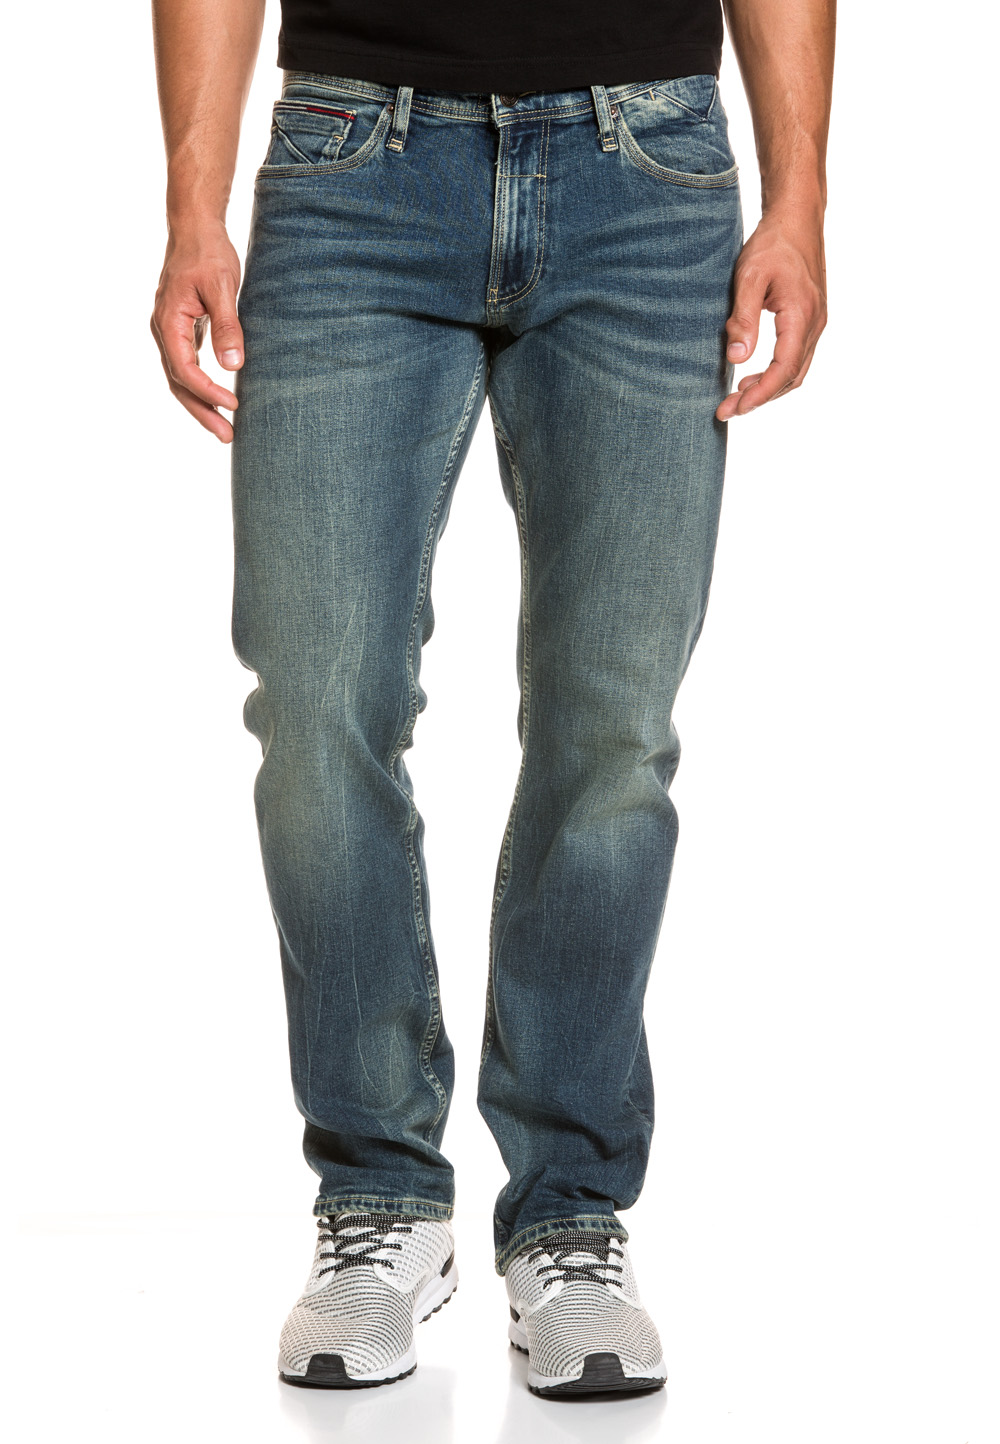 Tommy Hilfiger Stretch-Jeans Ryan, Straight Fit blau | Bekleidung > Jeans > Stretch Jeans | Blau | Jeans | Tommy Hilfiger